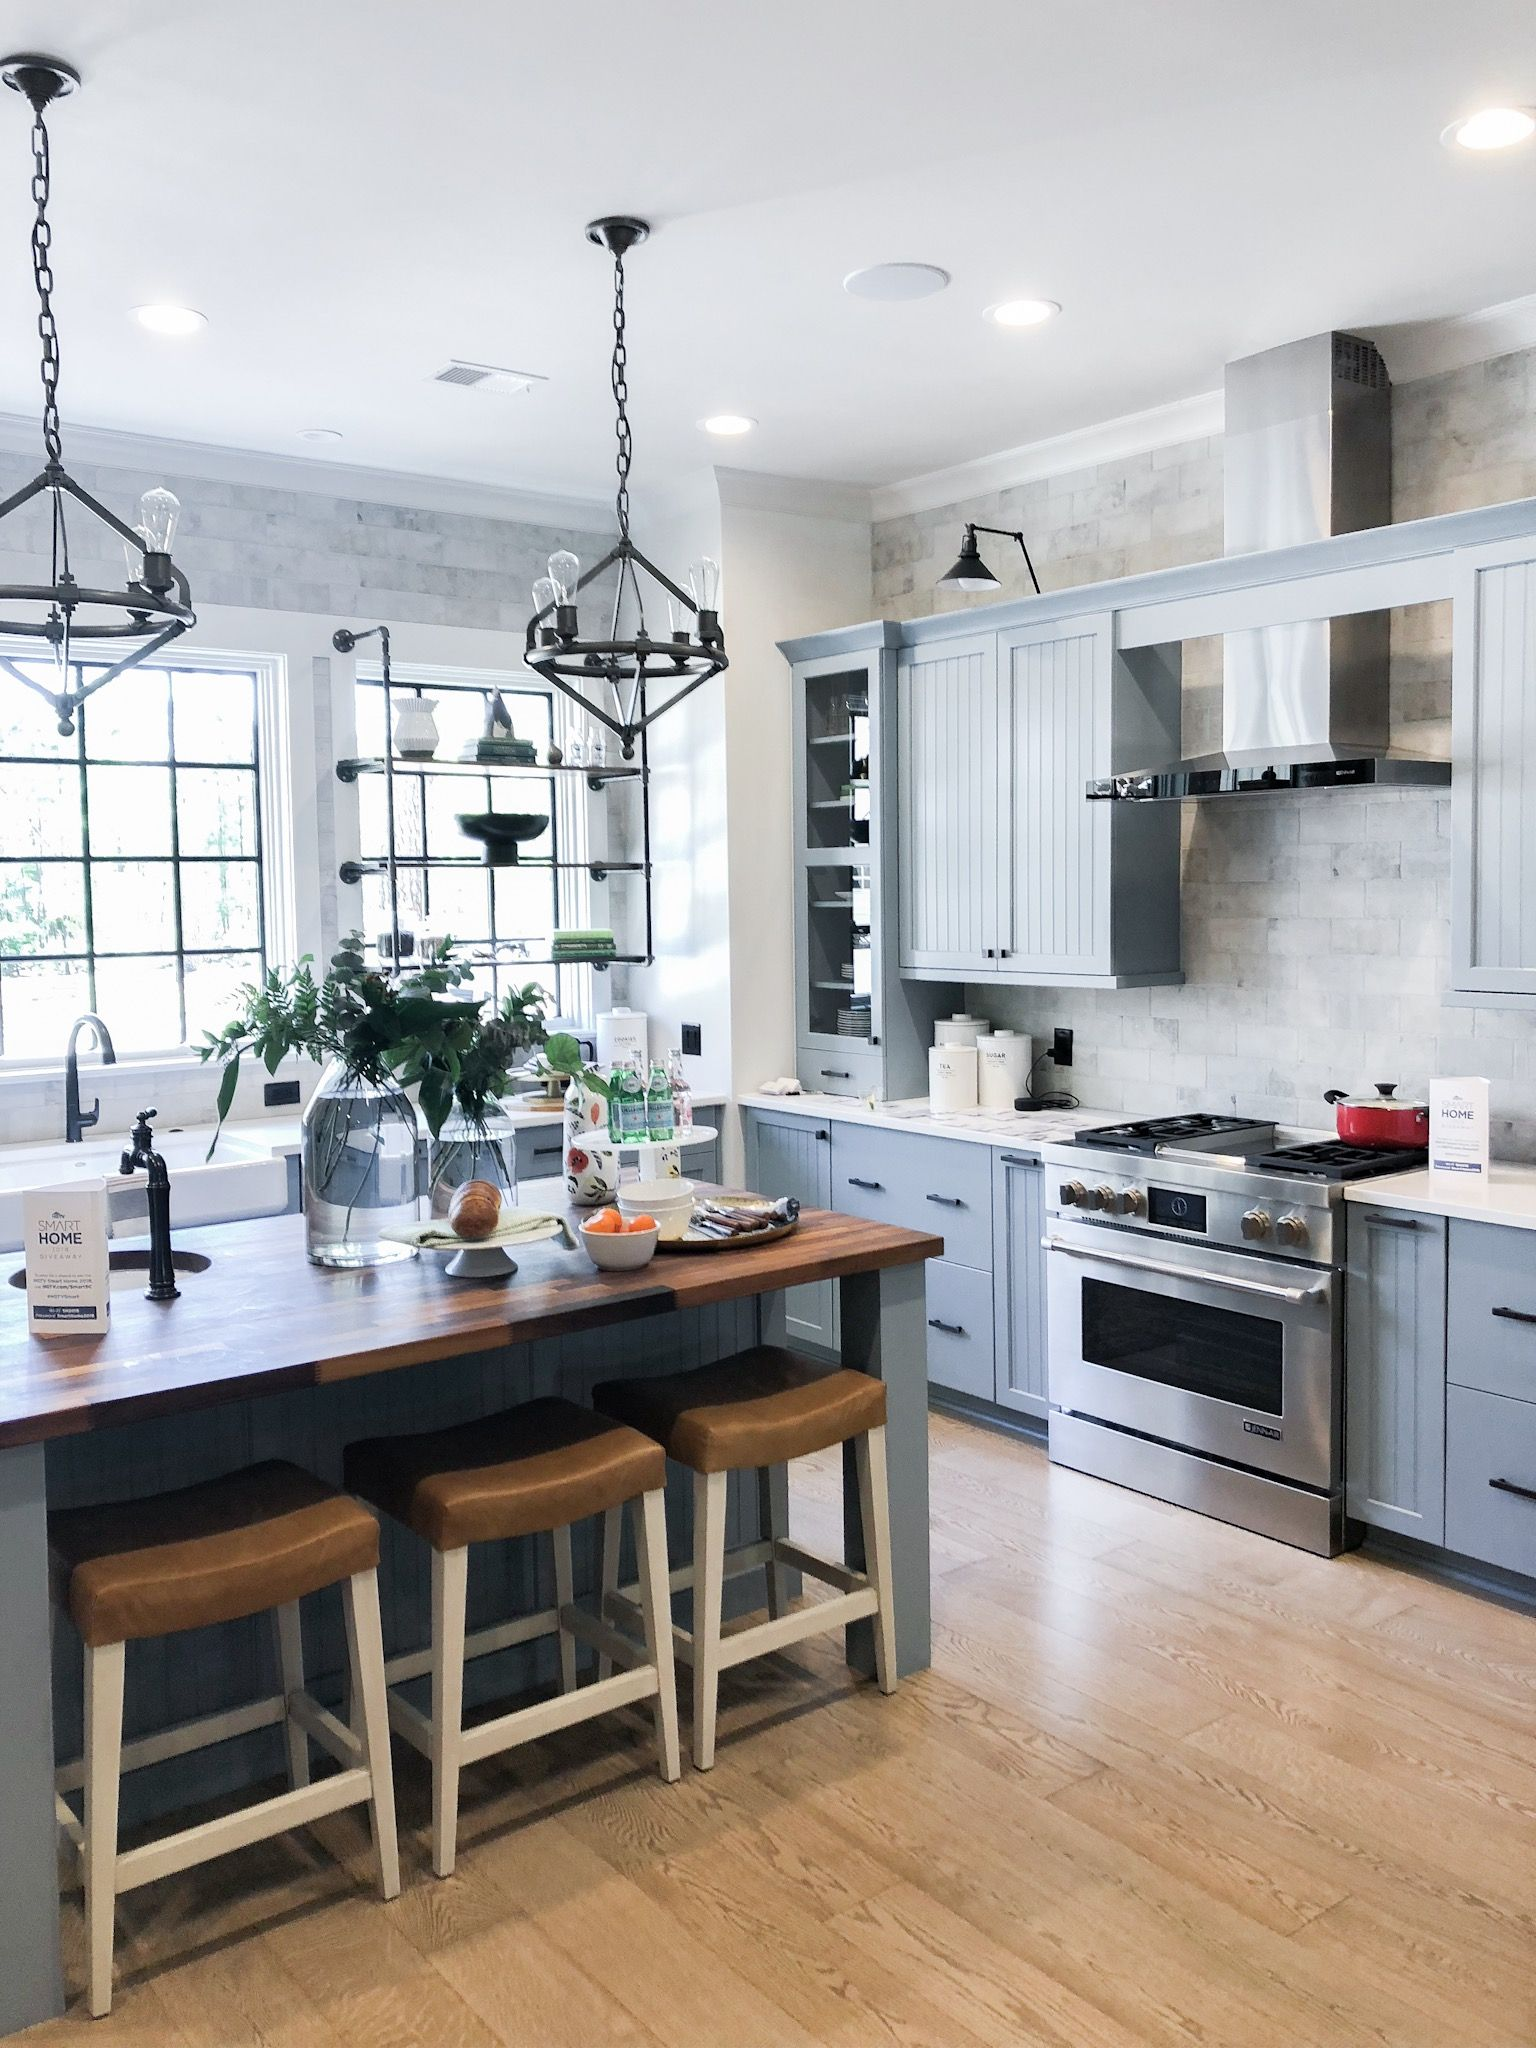 Recreate This Modern Southern Kitchen In Your Home Without A Major